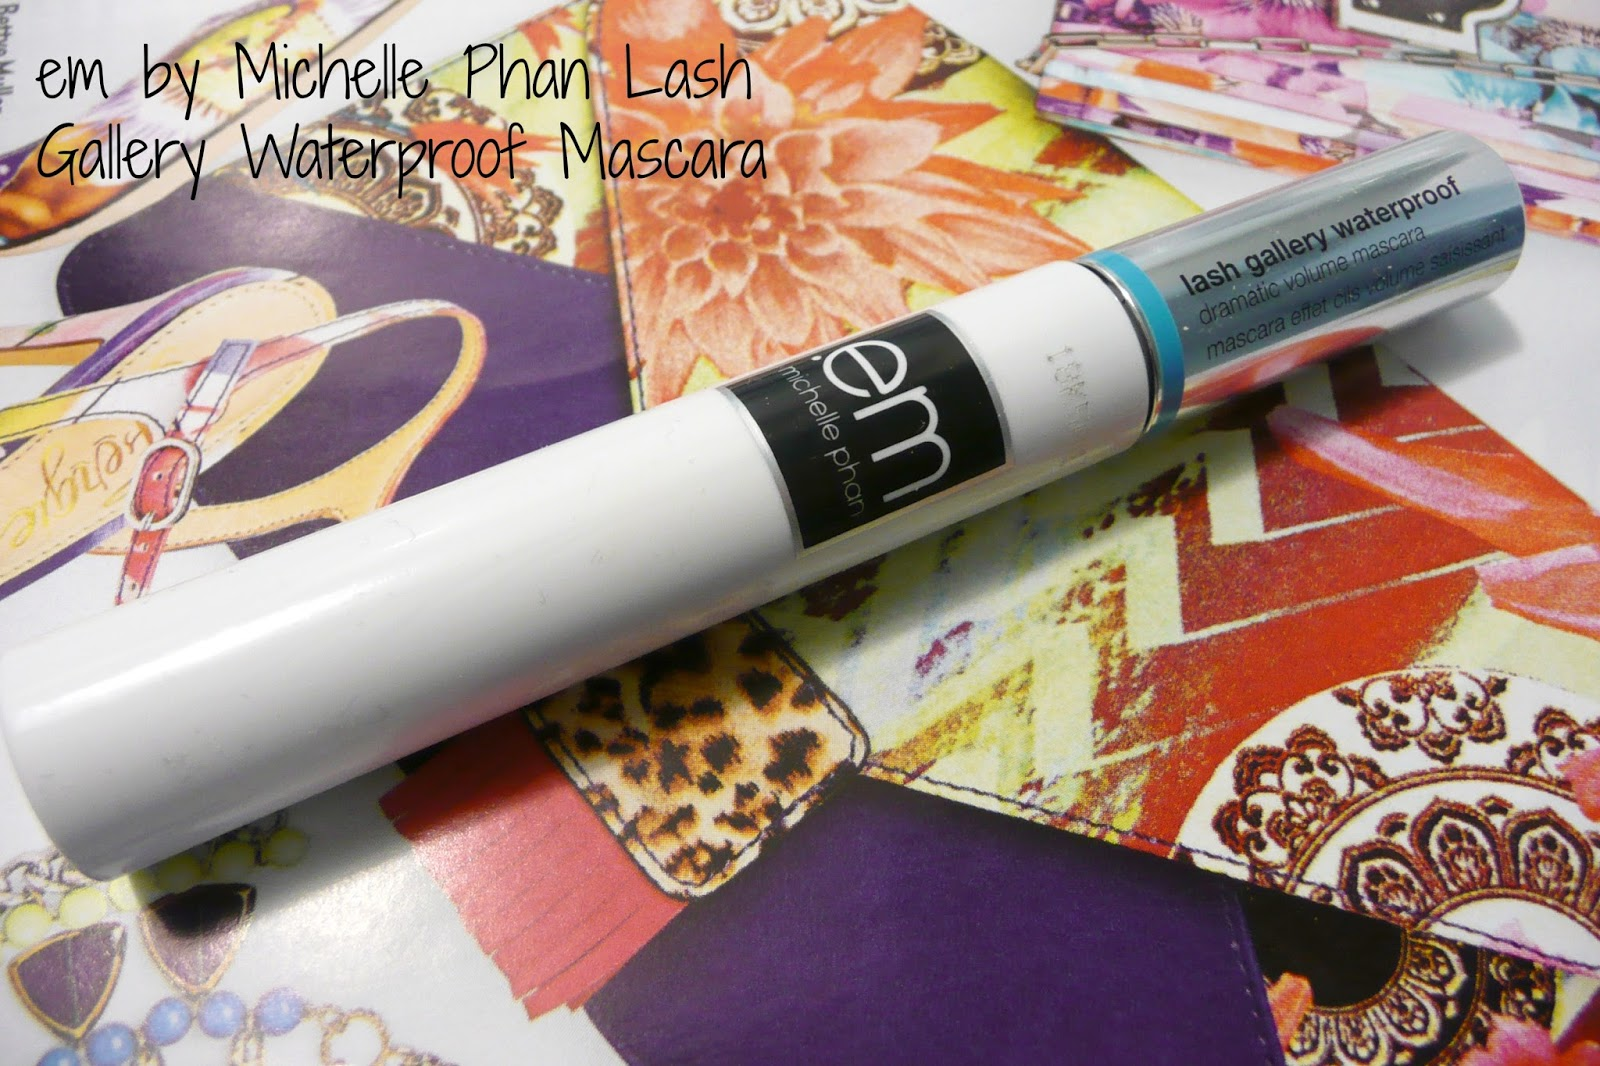 em by michelle phan lash gallery waterproof mascara